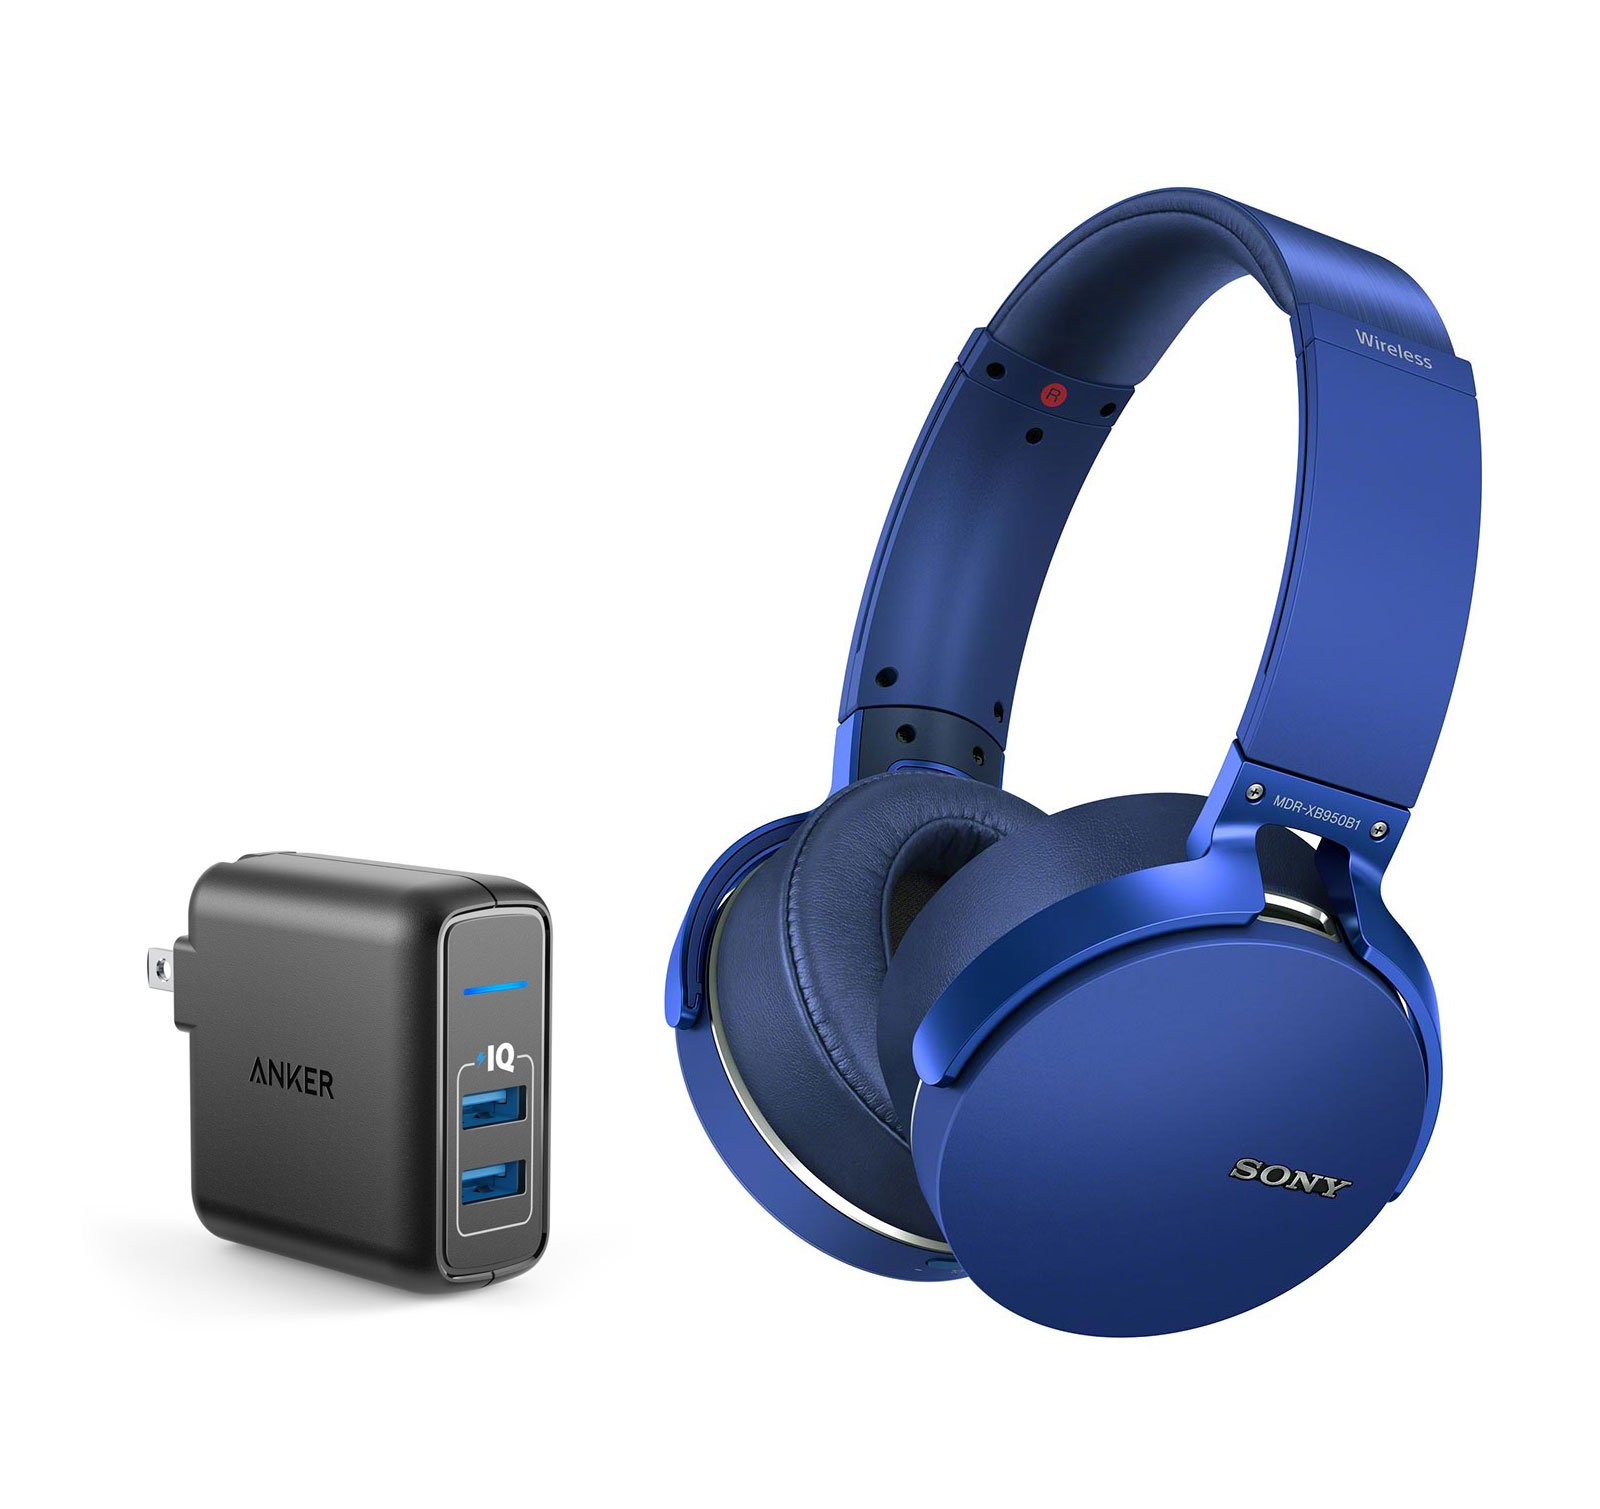 Sony MDRXB950B1/L Over-ear Bluetooth Headphone Bundle with Dual Port 24W USB Travel Wall Charger - Blue